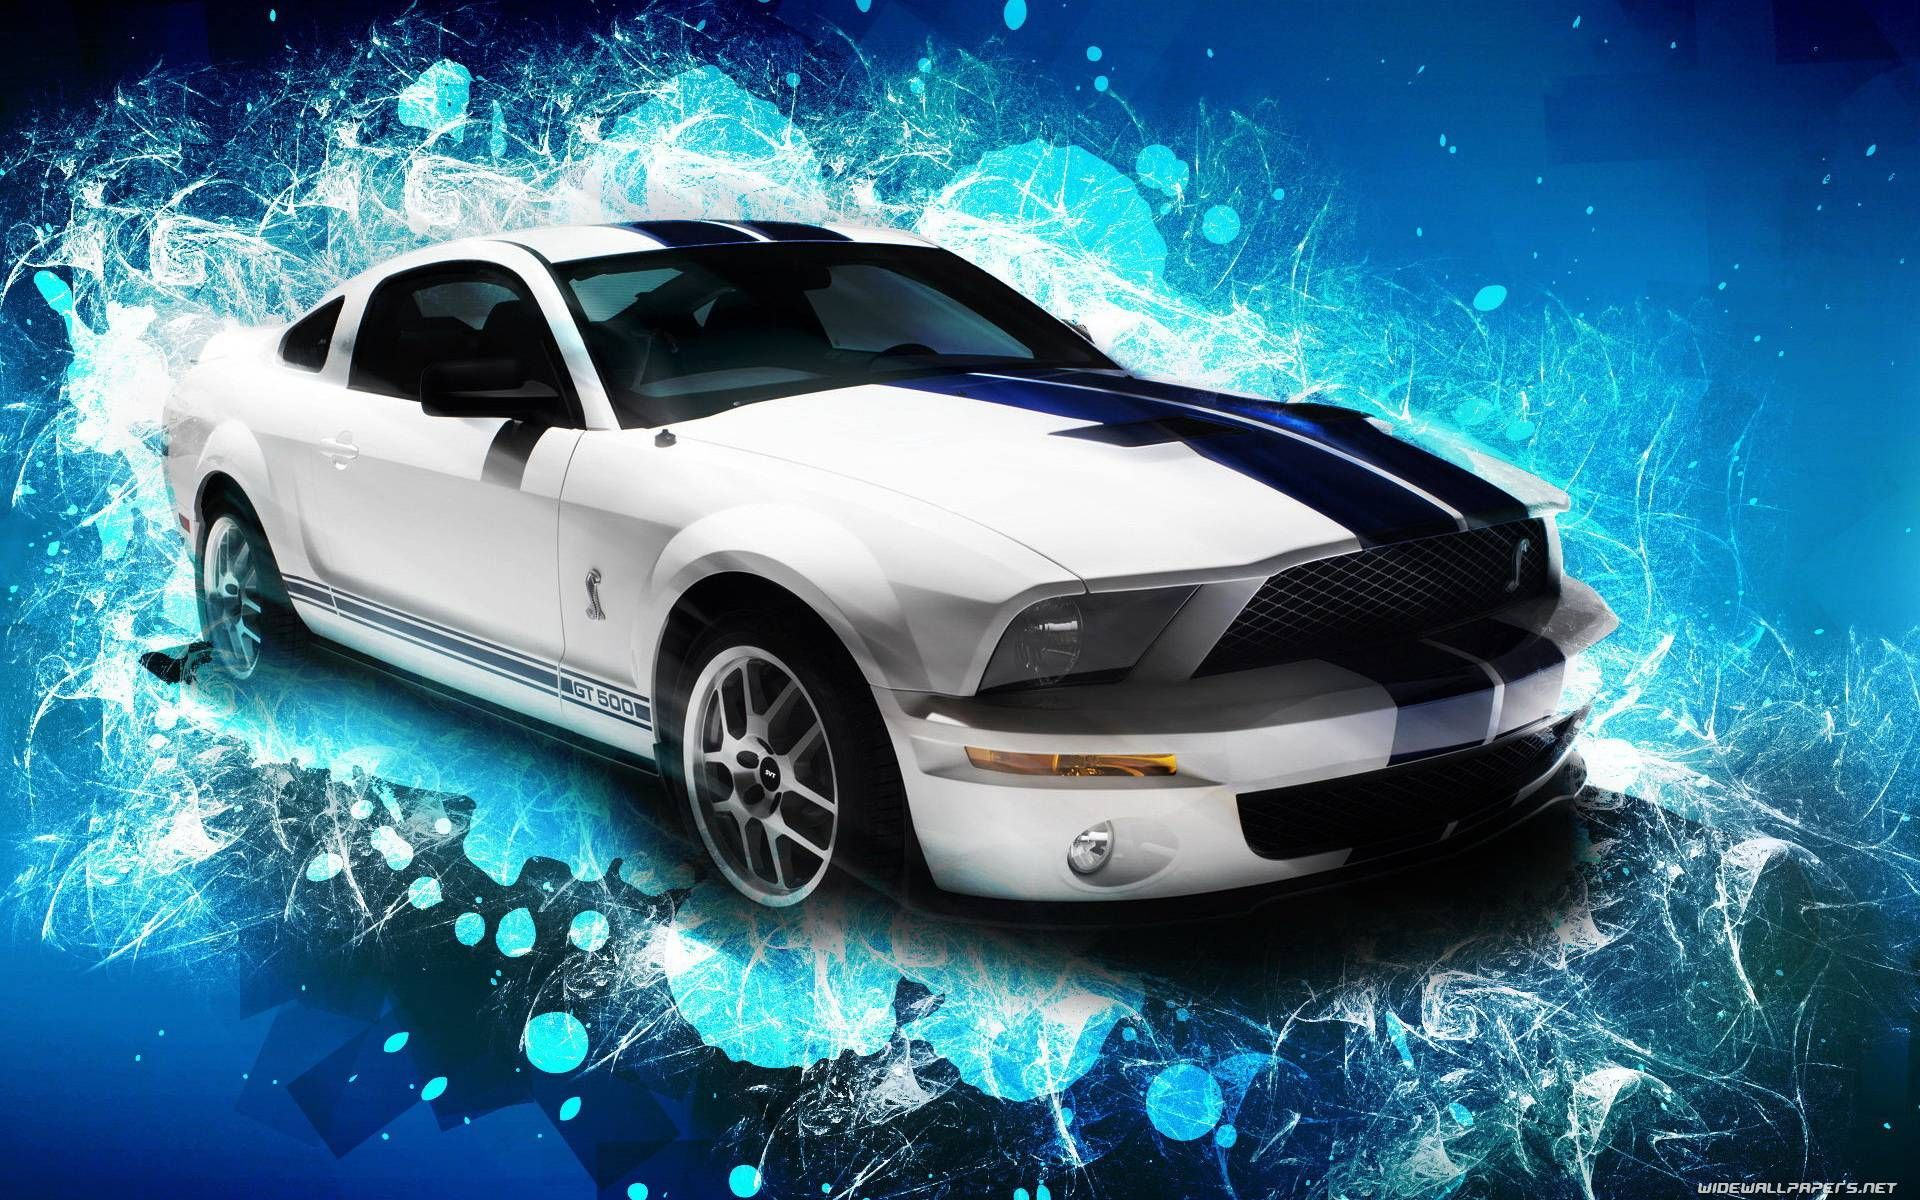 Mustang Free Hd Cars Wallpapers 46 Www Urdunewtrend Mustang 10 10k 12 Ra New Car Wallpaper Car Wallpapers Car Backgrounds